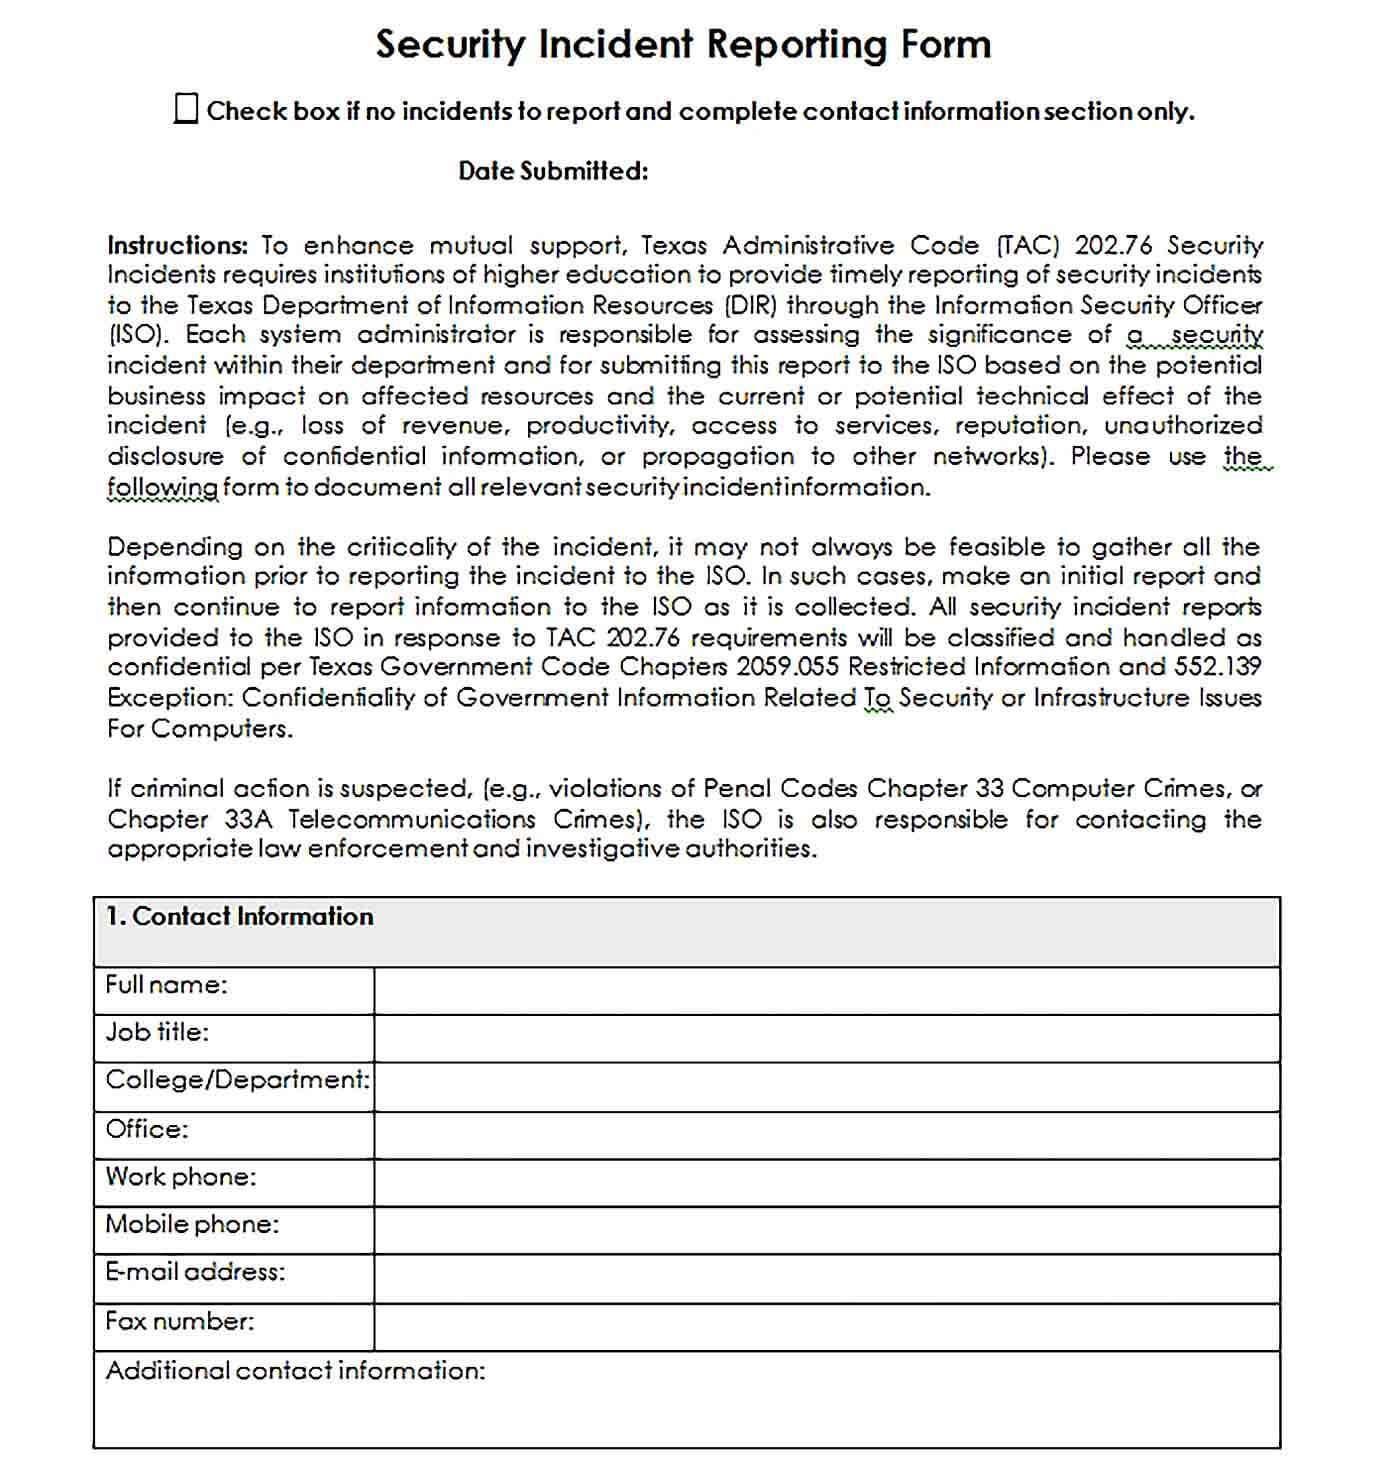 Sample Security Incident Reporting Form